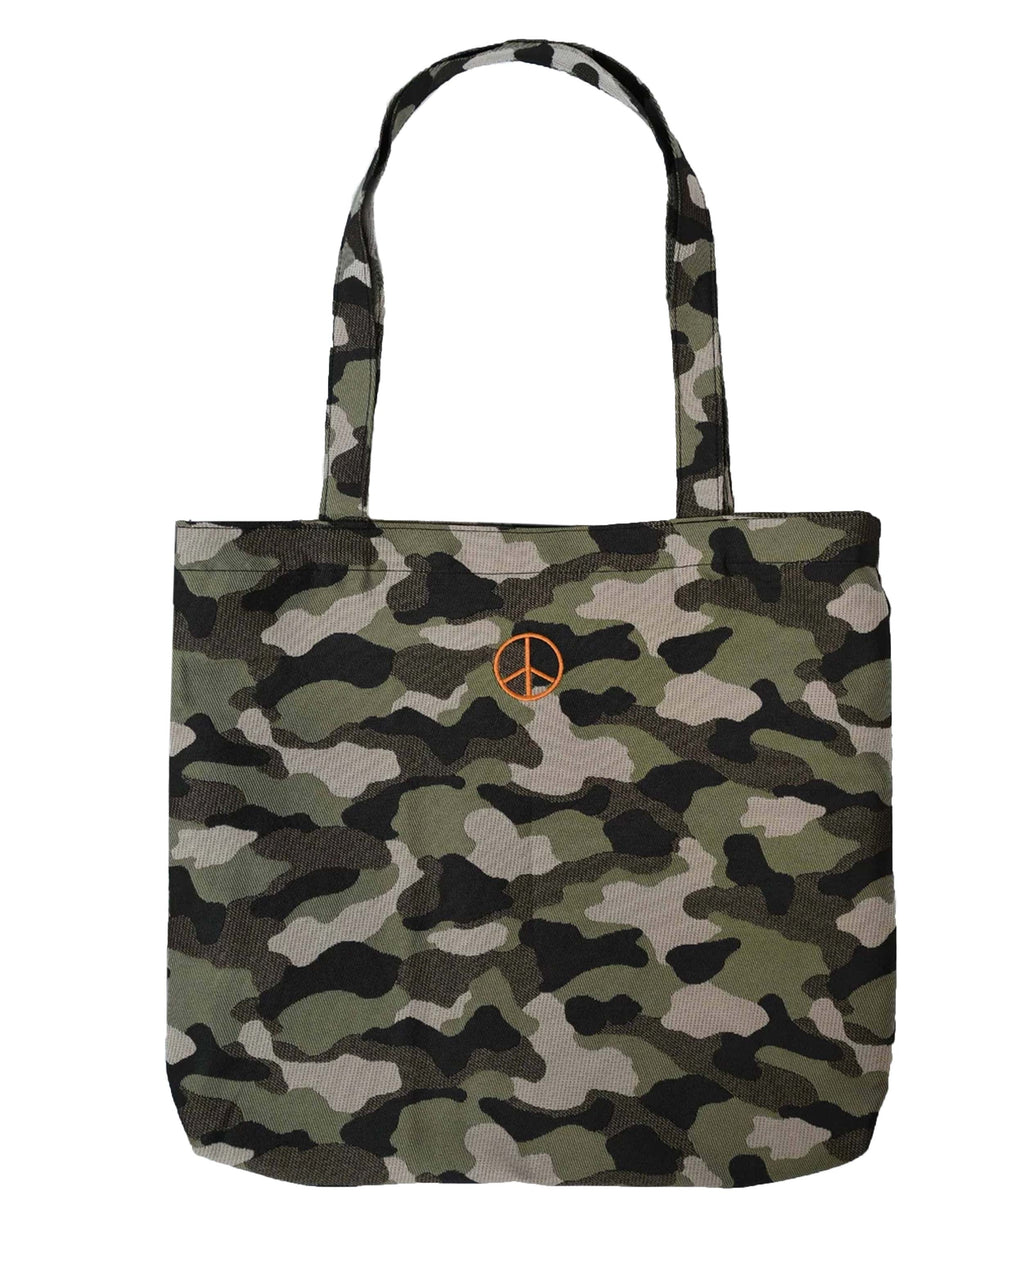 AD10015 - CAMO TOTE BAG - accessories - bags - Camo is the new neutral. Pair this perfect size tote back with almost everything already in your closet. Featuring a bright orange peace sign - hand embroidered by Nicole herself.